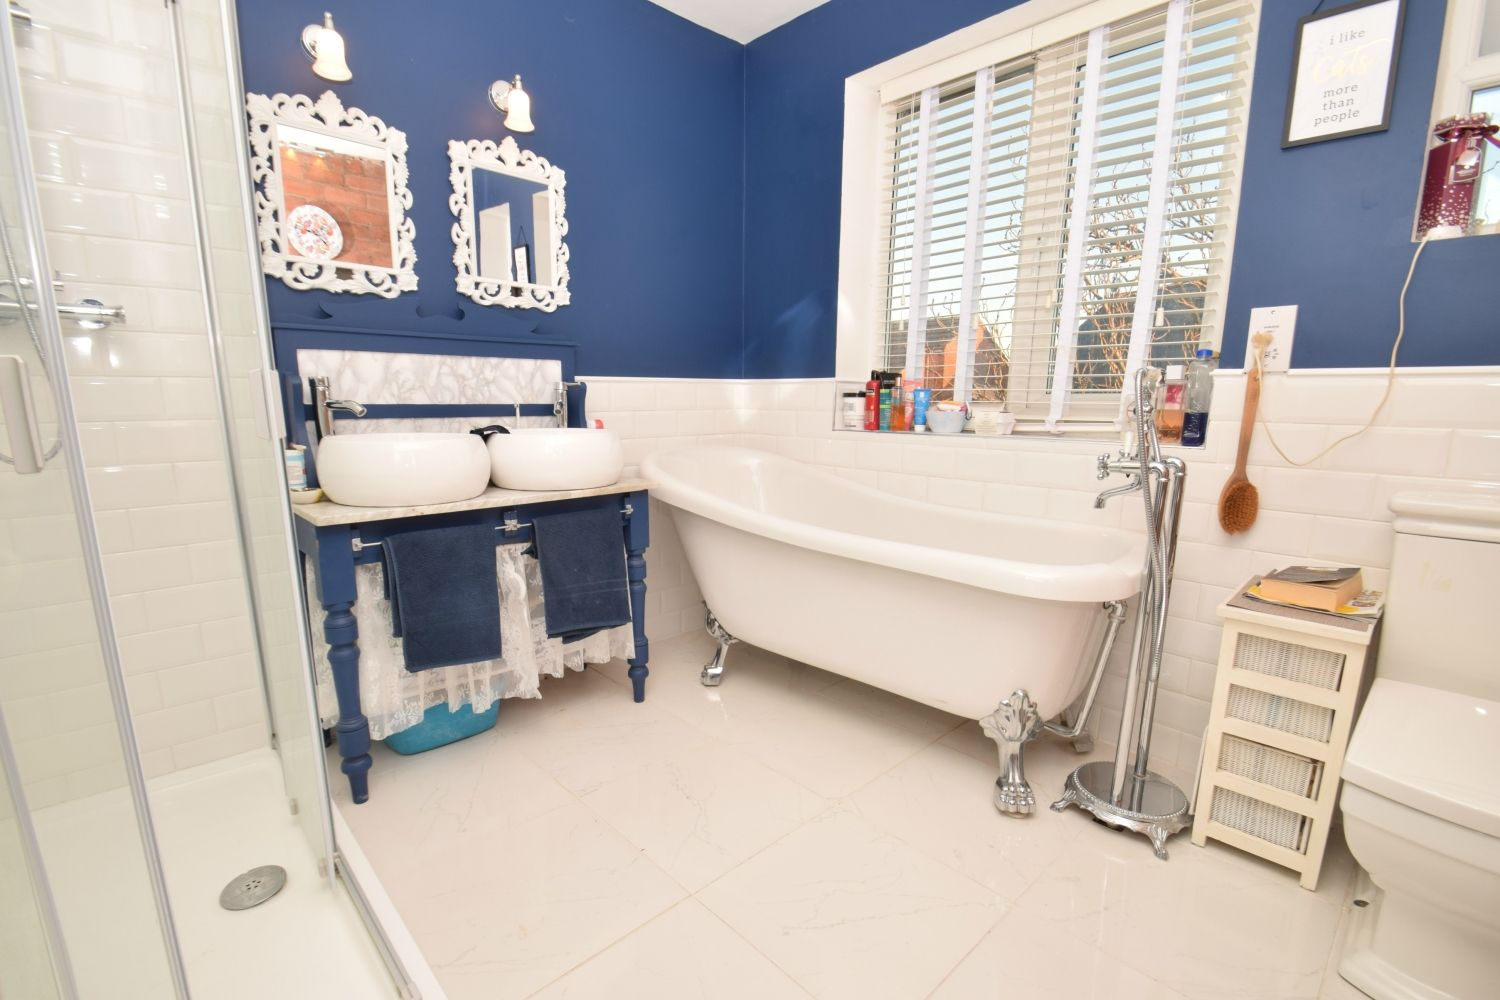 4 bed semi-detached for sale in Upland Grove, Bromsgrove, B61  - Property Image 19